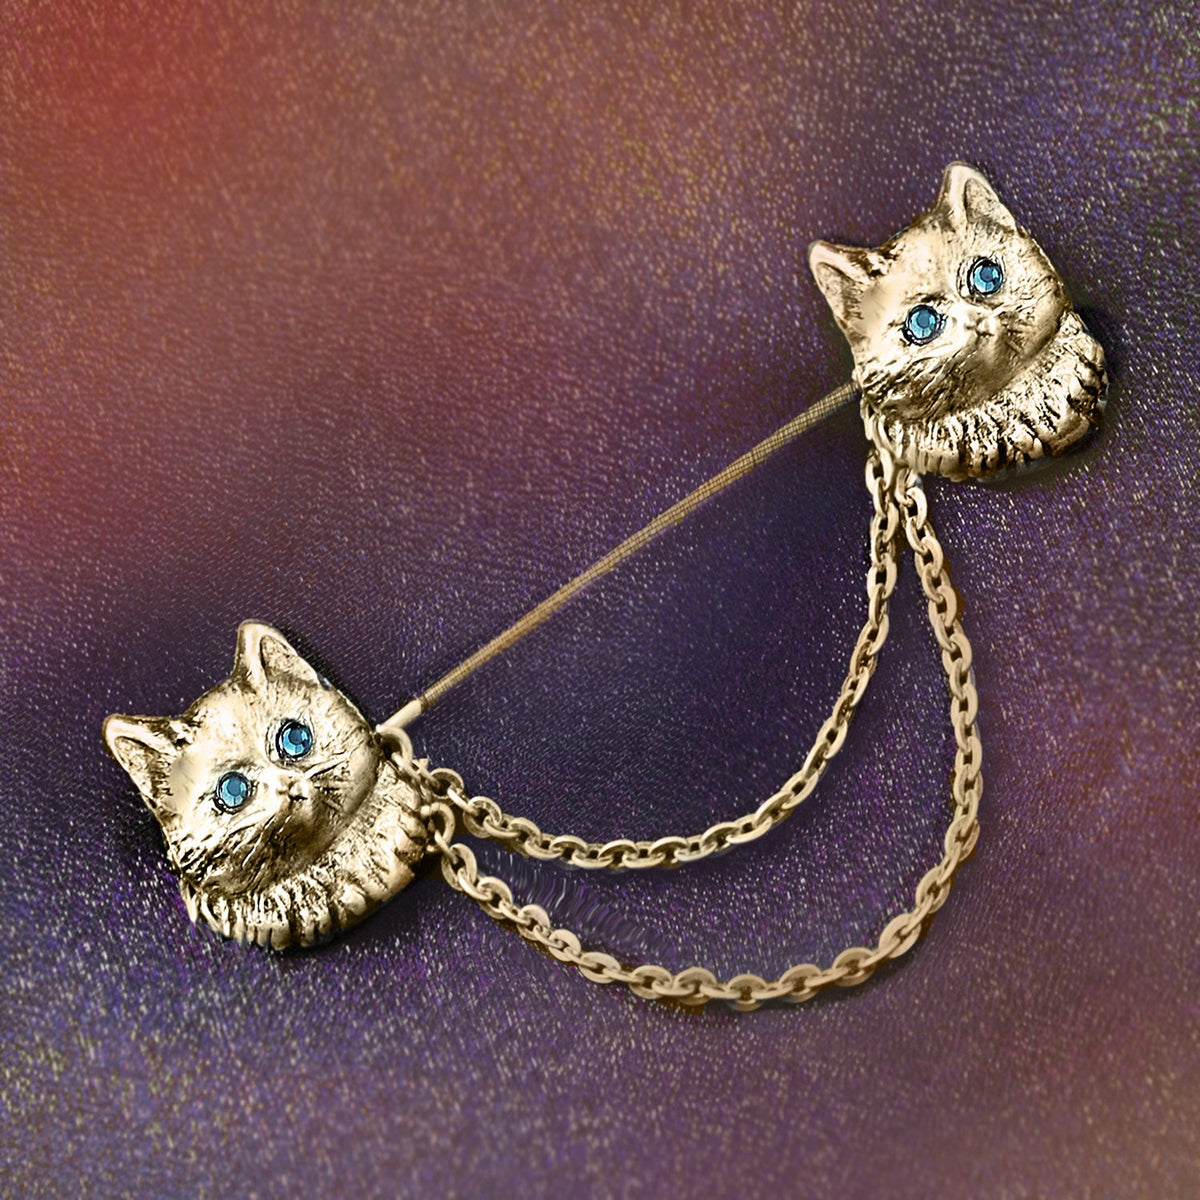 Twin Kittens Pin P680 - sweetromanceonlinejewelry